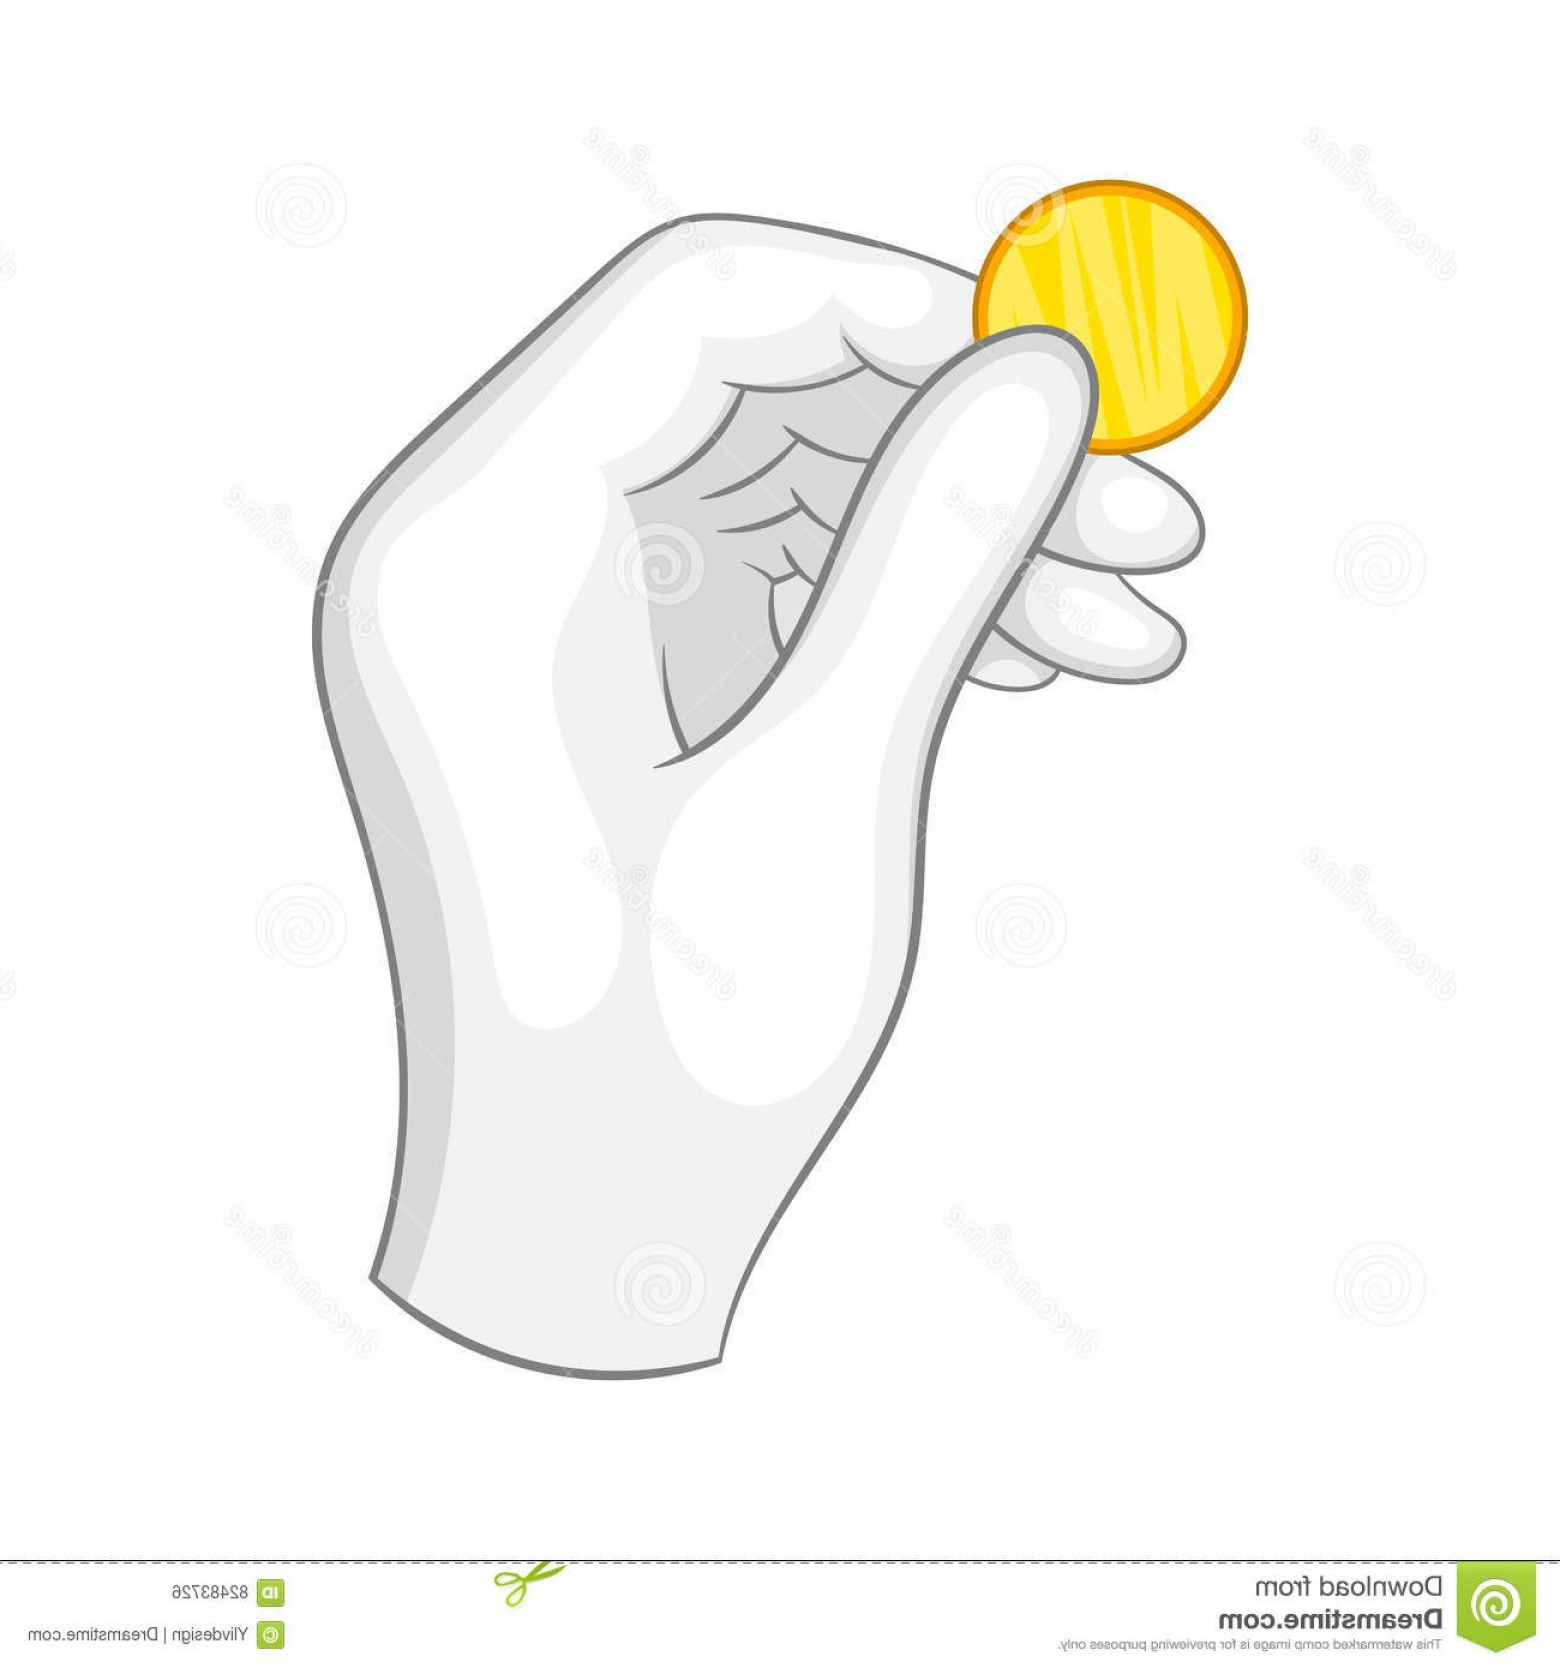 White Glove Service Vector: Stock Illustration Hand White Glove Holding Gold Coin Icon Cartoon Style Background Image